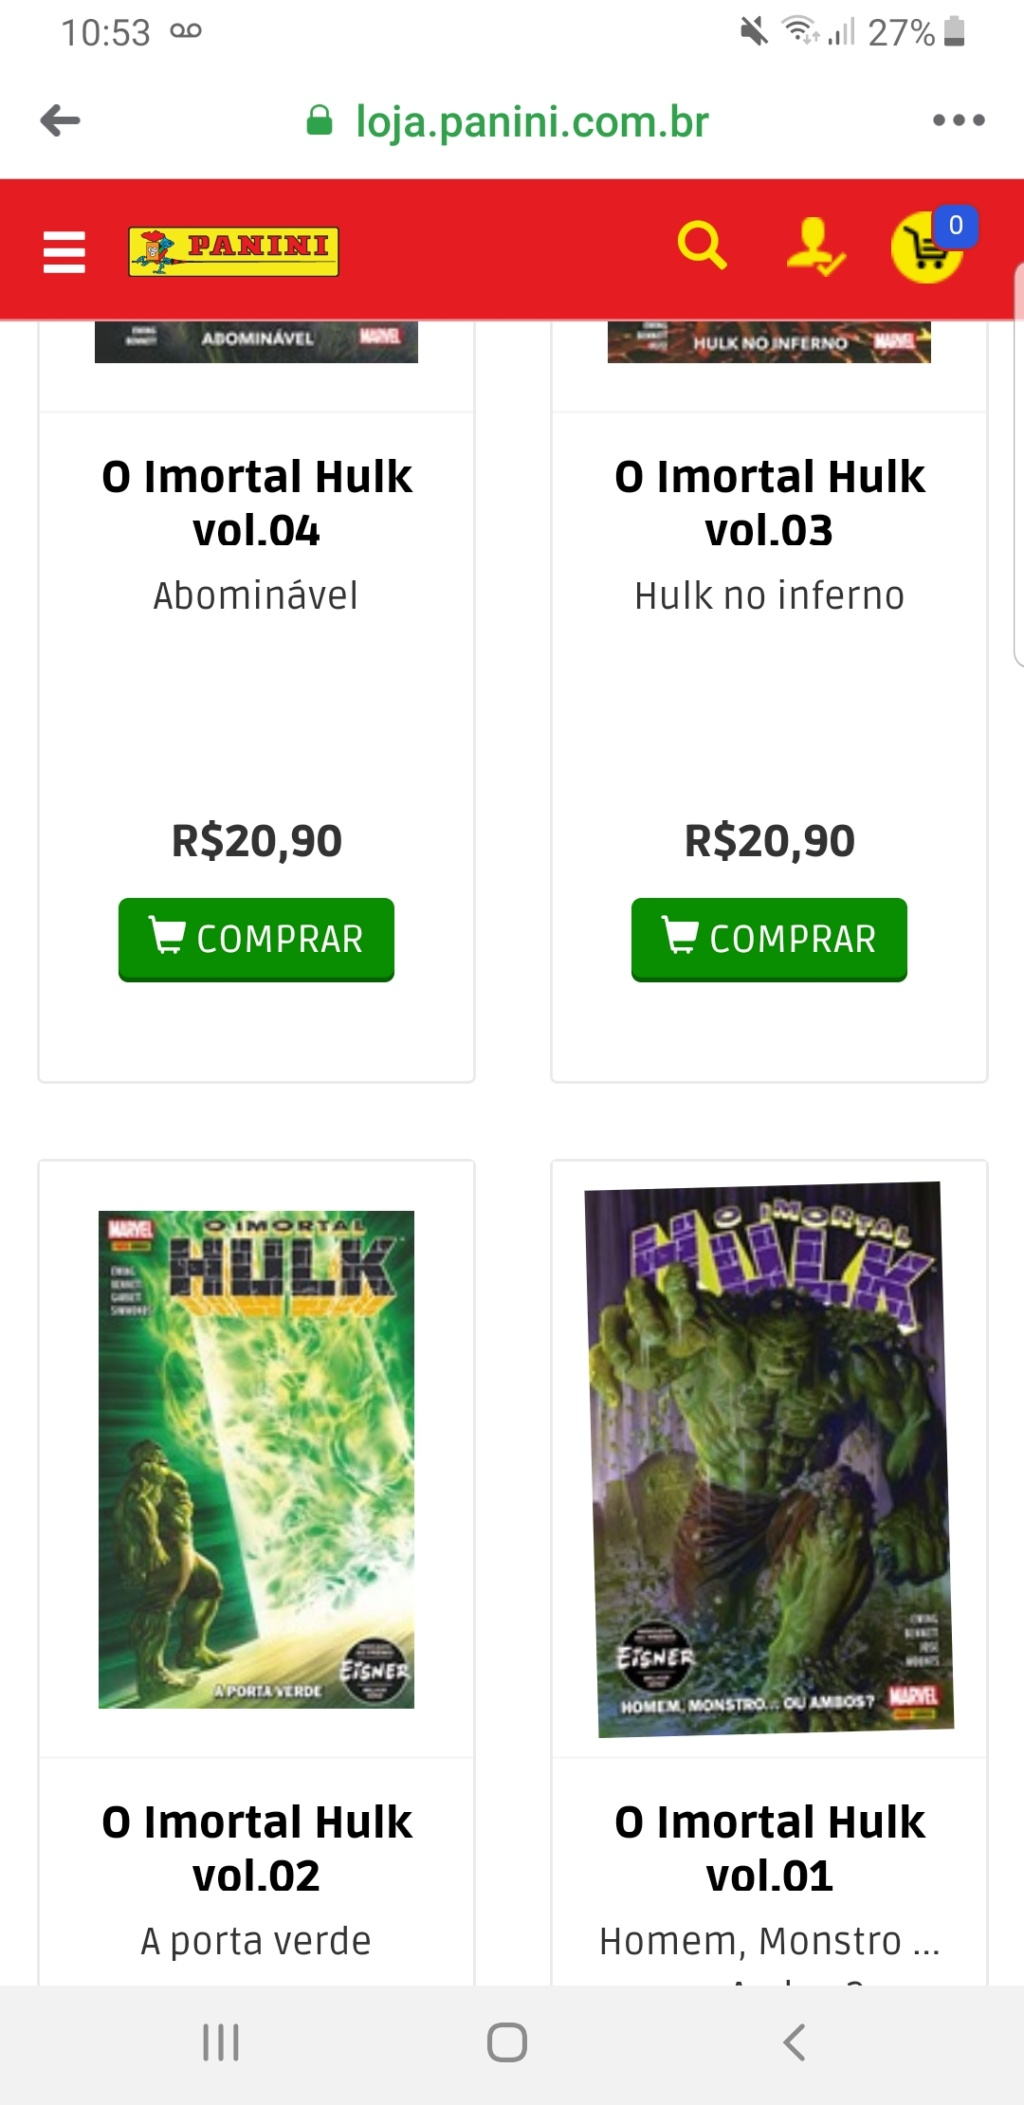 01-06 - Marvel Panini Latam / Argentina Screen26